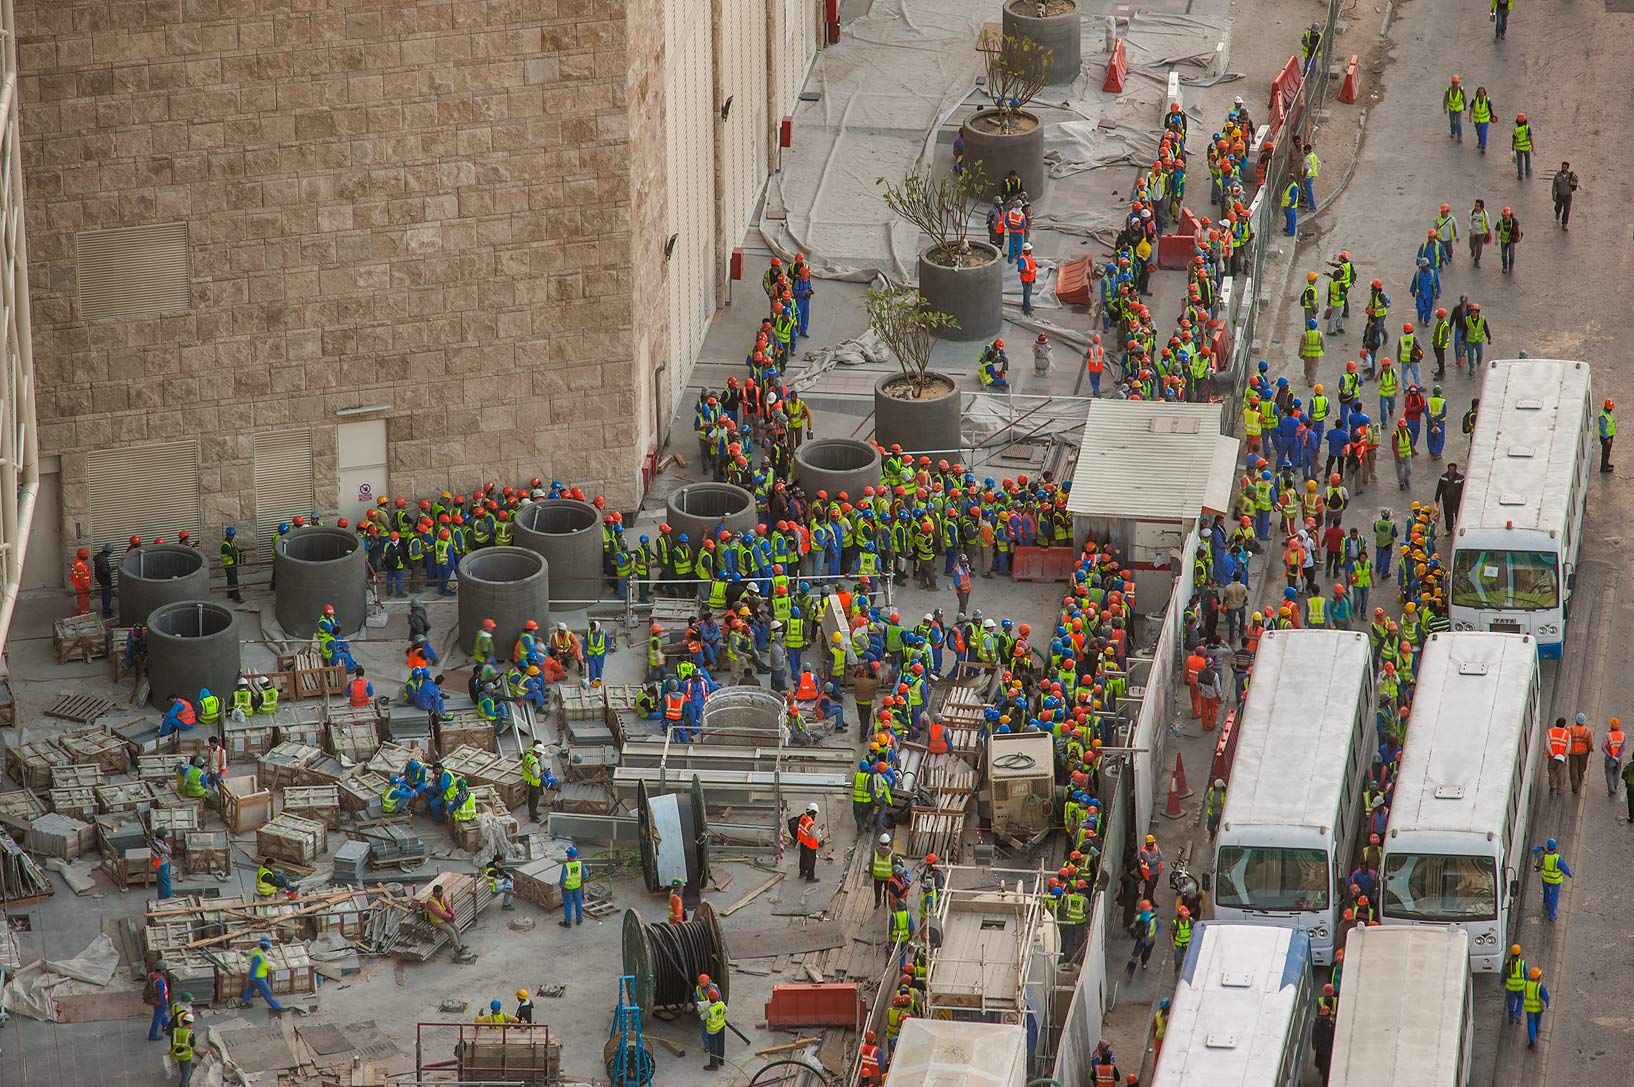 Workers loading buses near construction of Qatar...1-2244 of Ezdan Hotel. Doha, Qatar